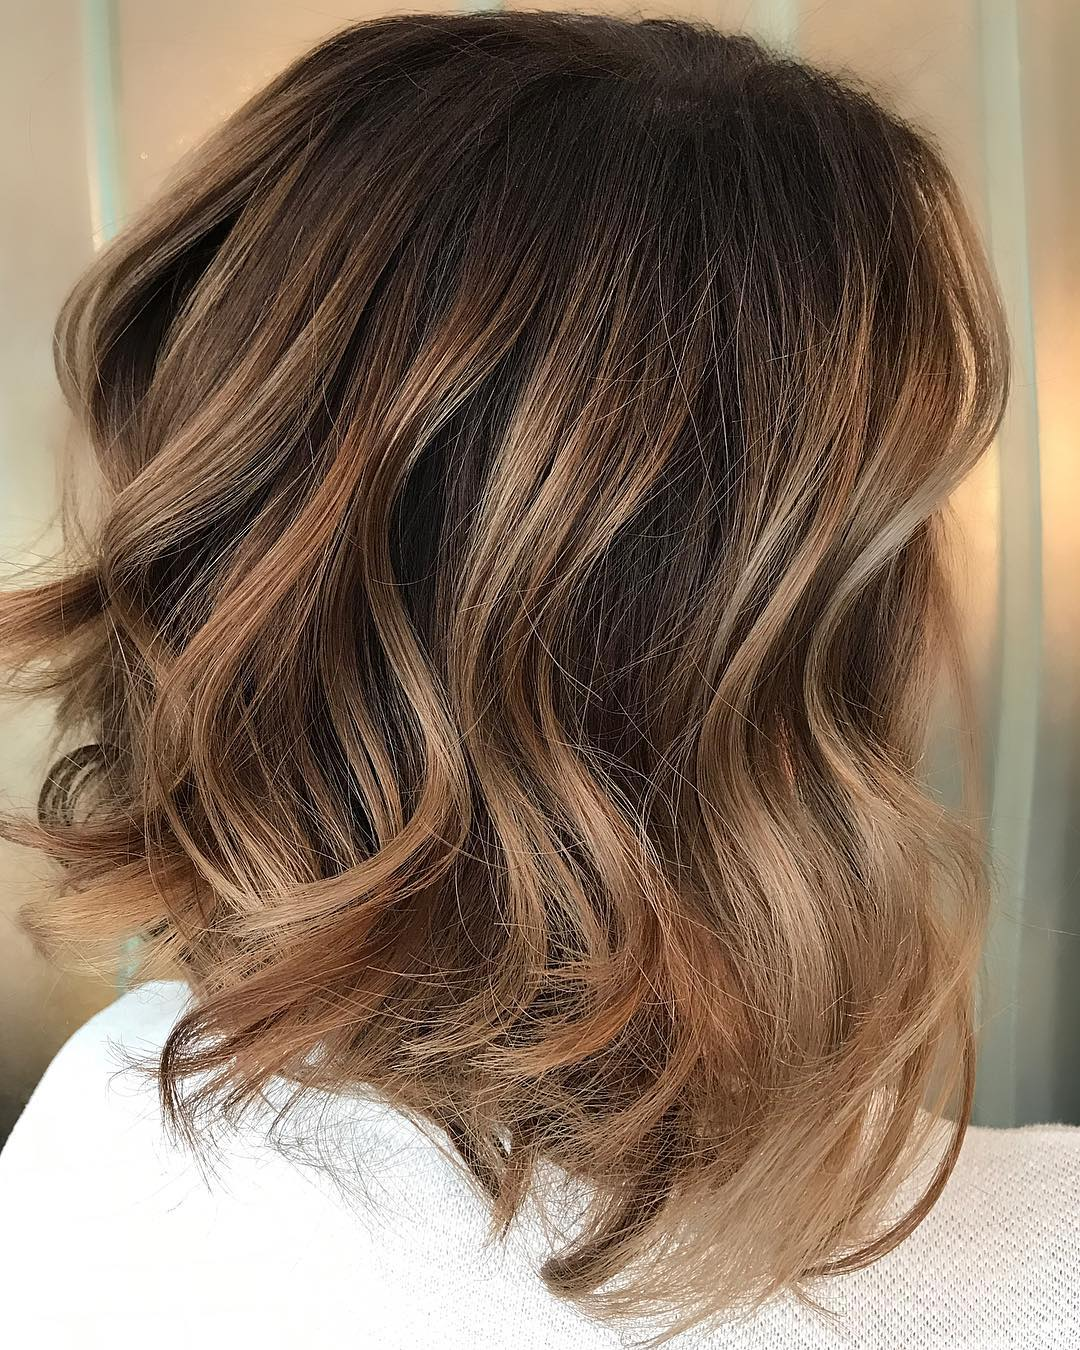 10 Trendy Brown Balayage Hairstyles for MediumLength Hair